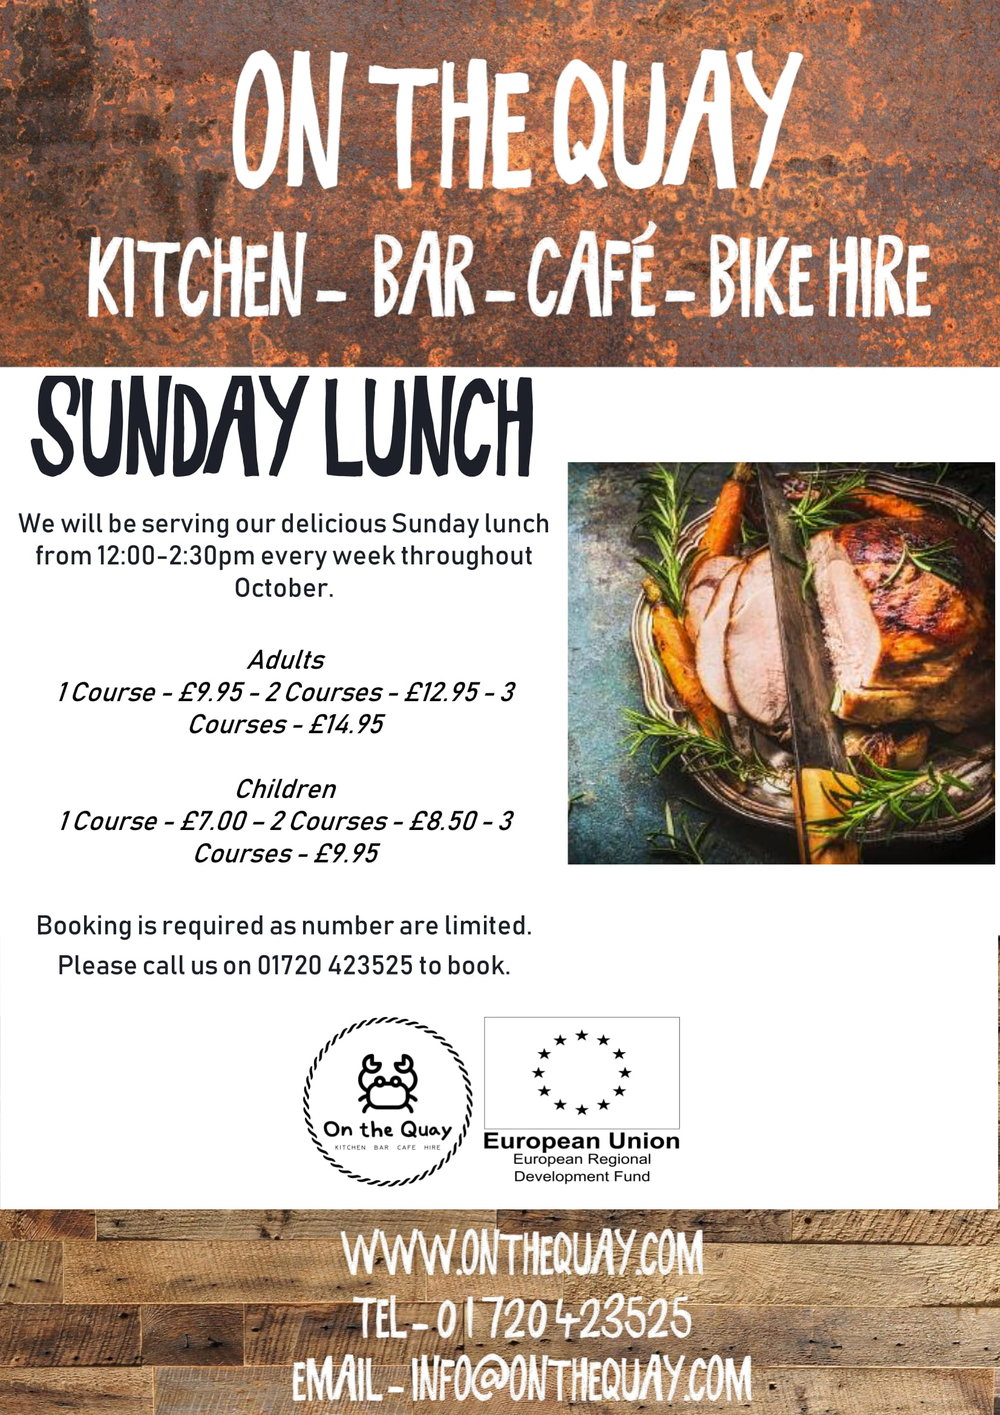 On The Quay A4 Poster Sunday Lunch Version 3-1.jpg